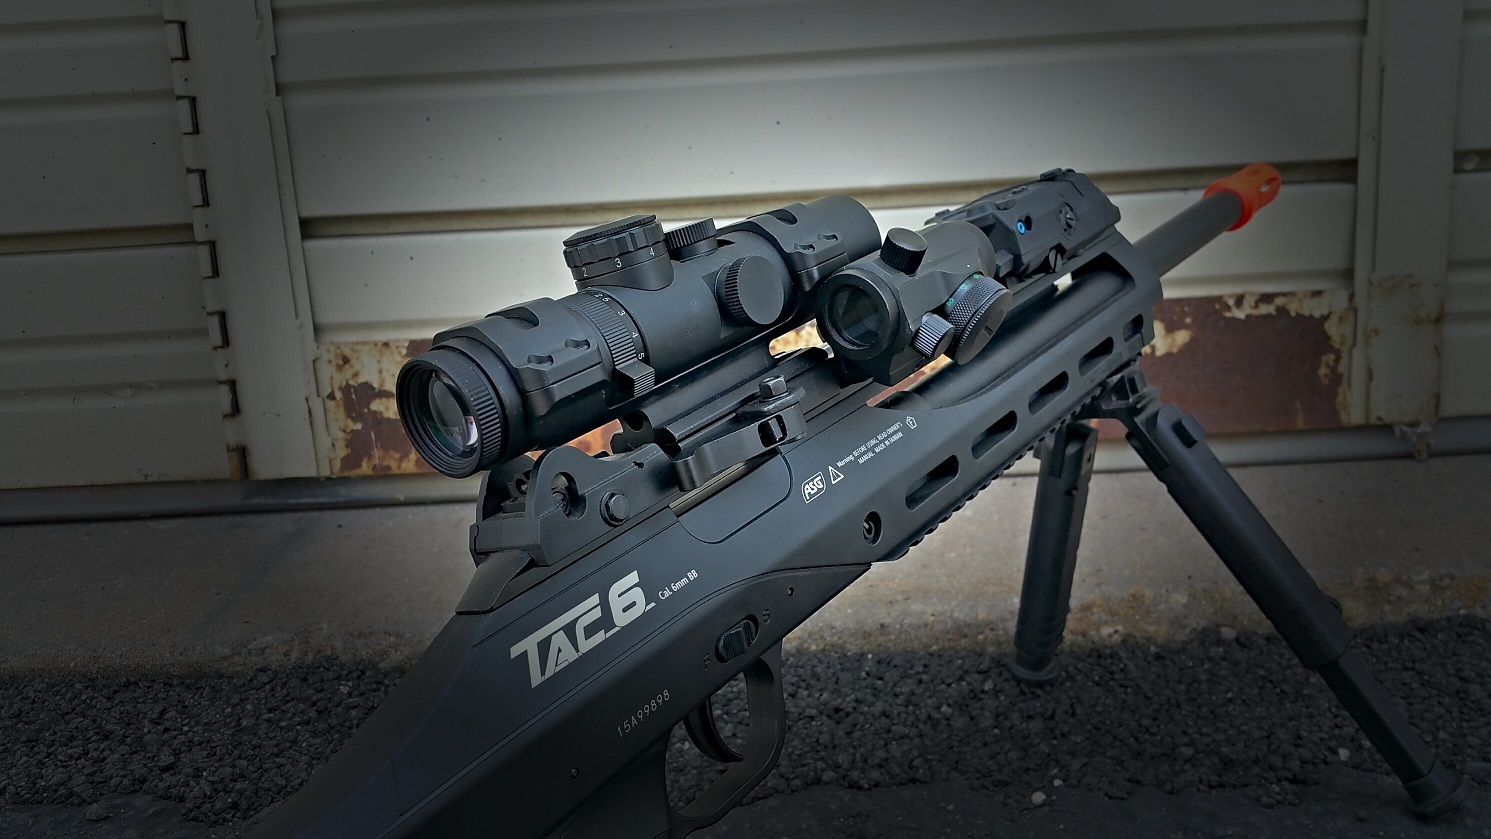 Asg Tac 6 Airsoft Sniper Rifle Review Hop Up Version